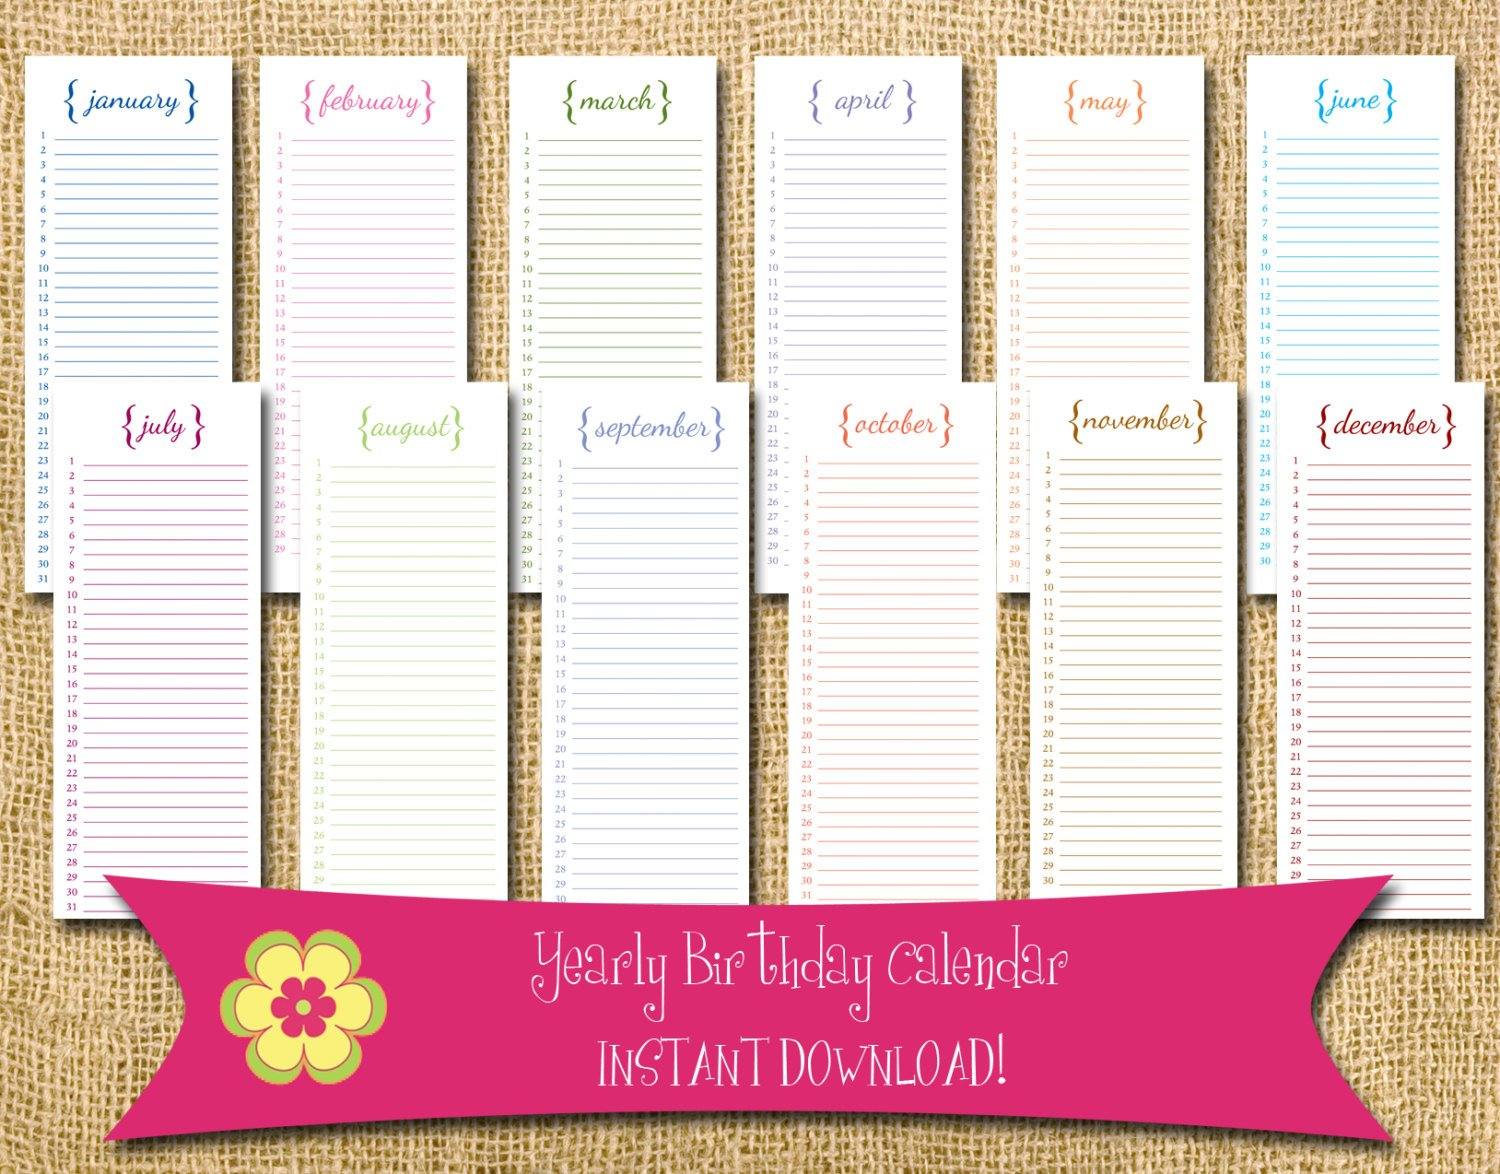 Instant Download Perpetual Birthday Calendar With Brackets Free Printable Birthday Calendars